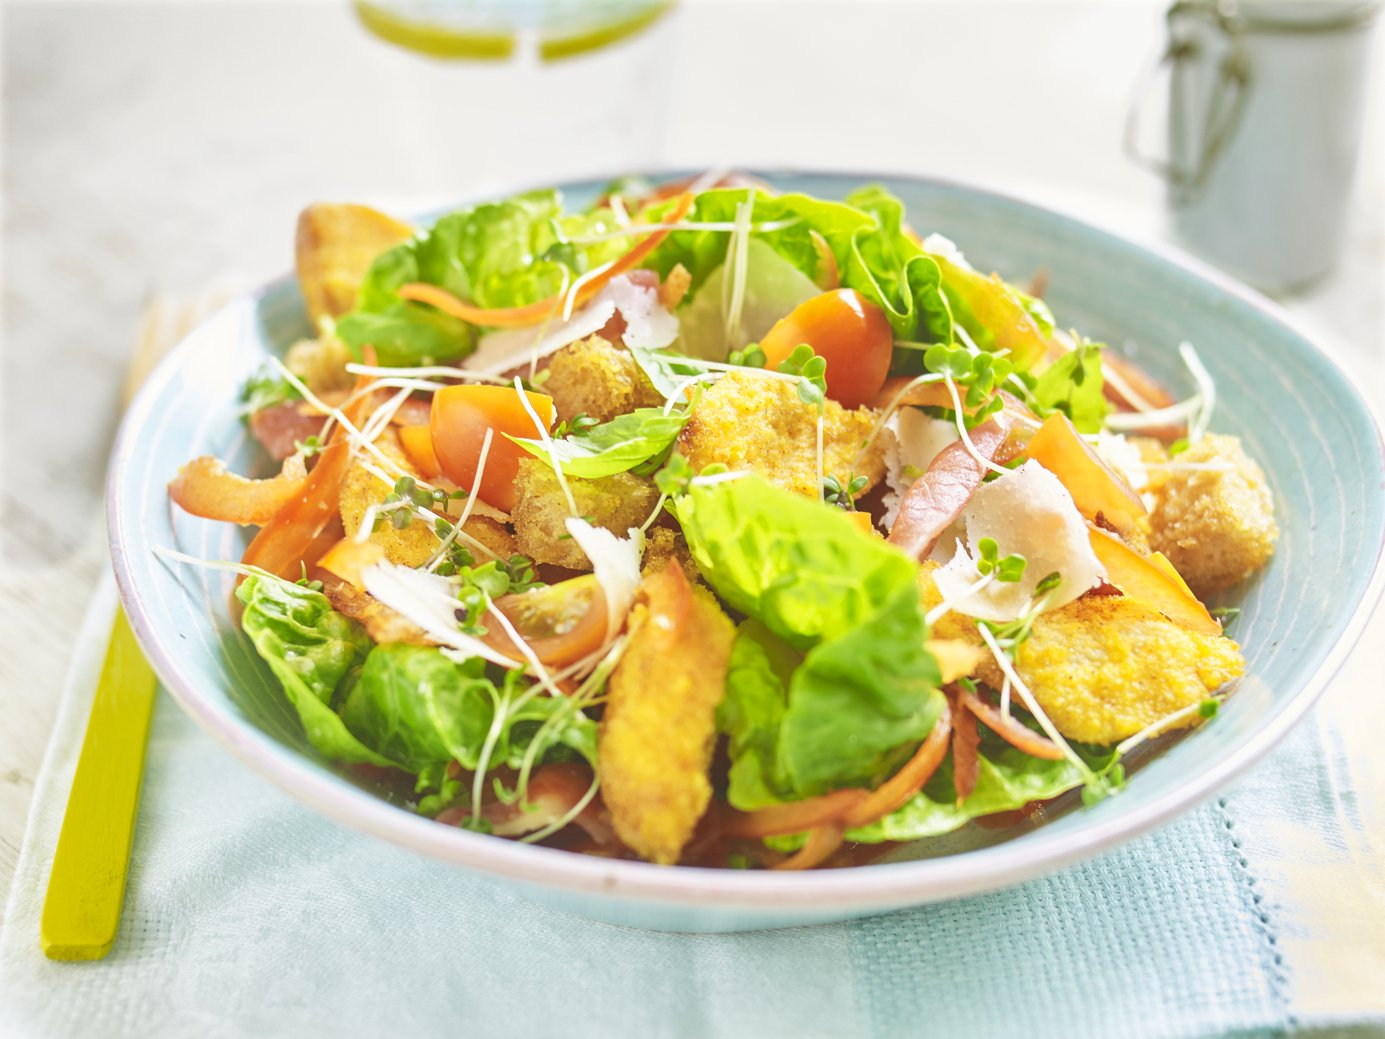 Chicken Caesar salad, sourdough croutons & yogurt dressing